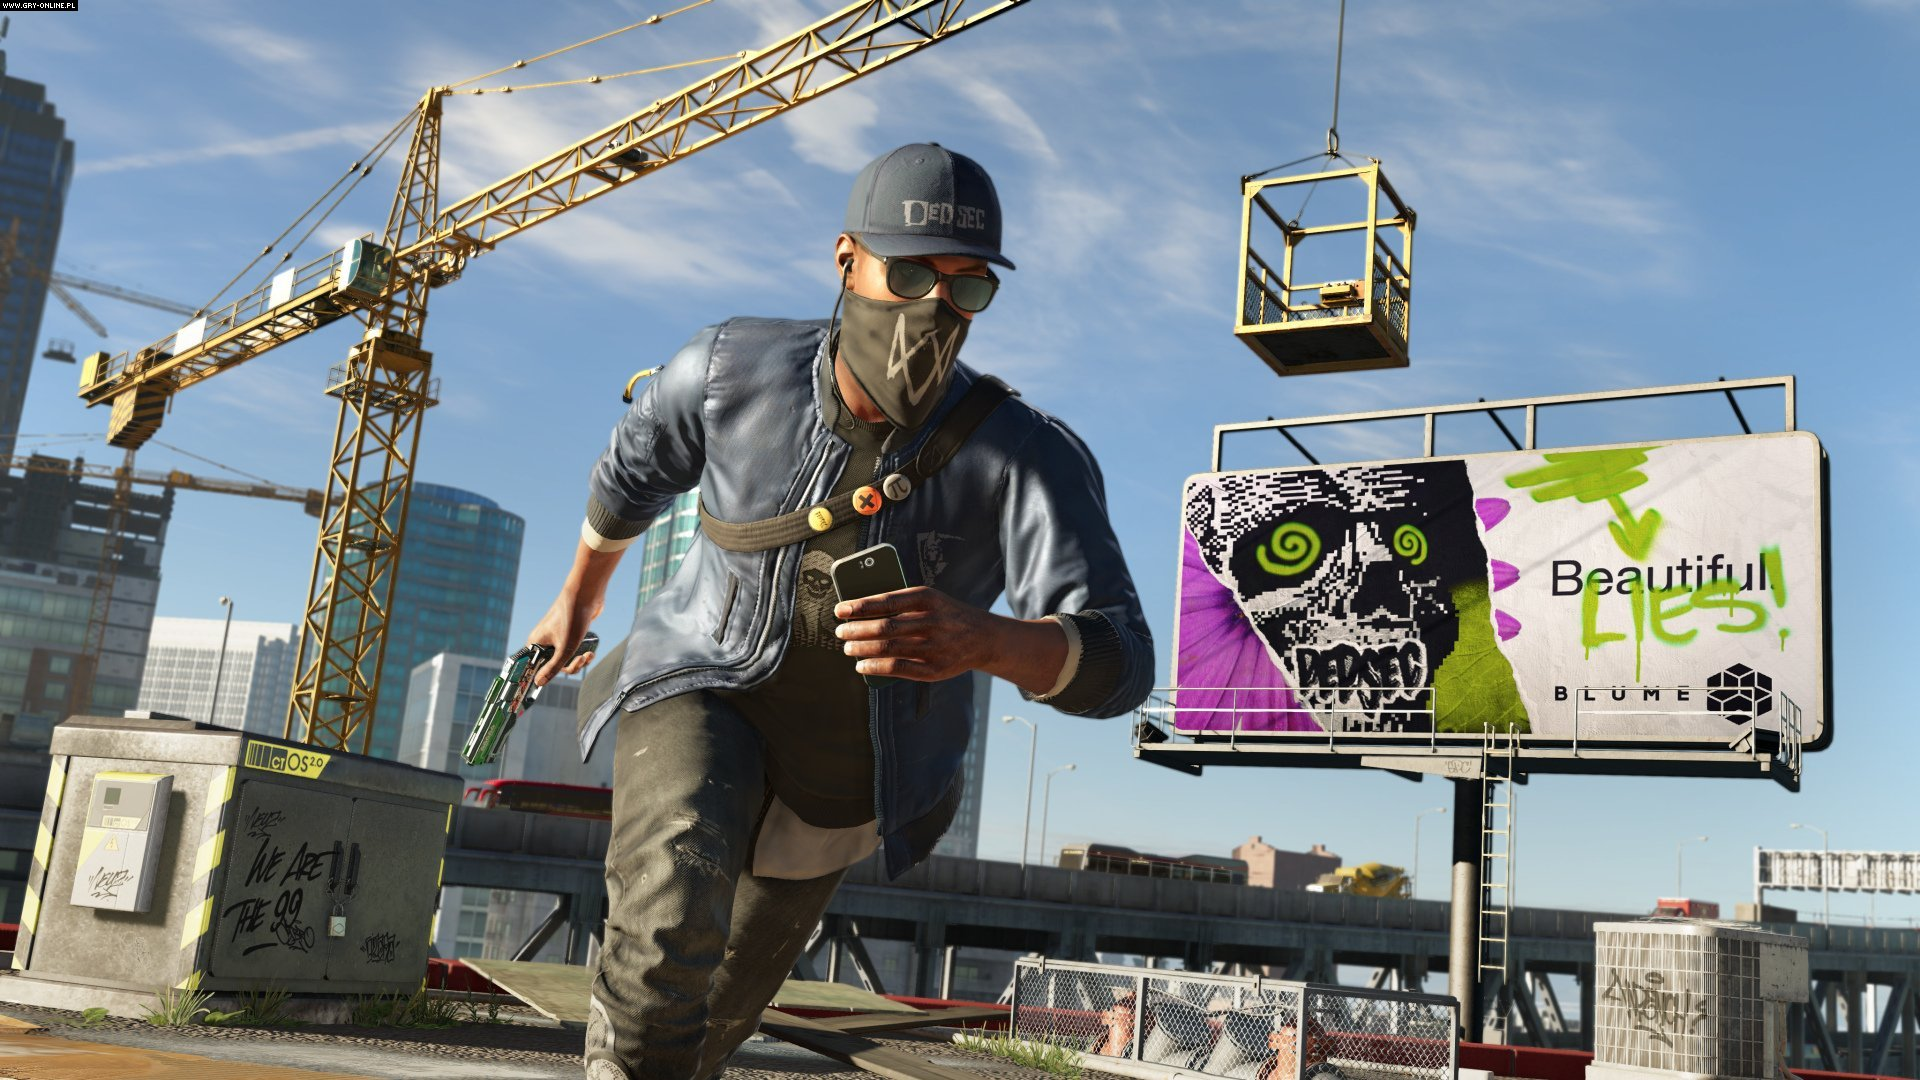 Watch Dogs 2 PC, PS4, XONE Games Image 7/10, Ubisoft Studios, Ubisoft